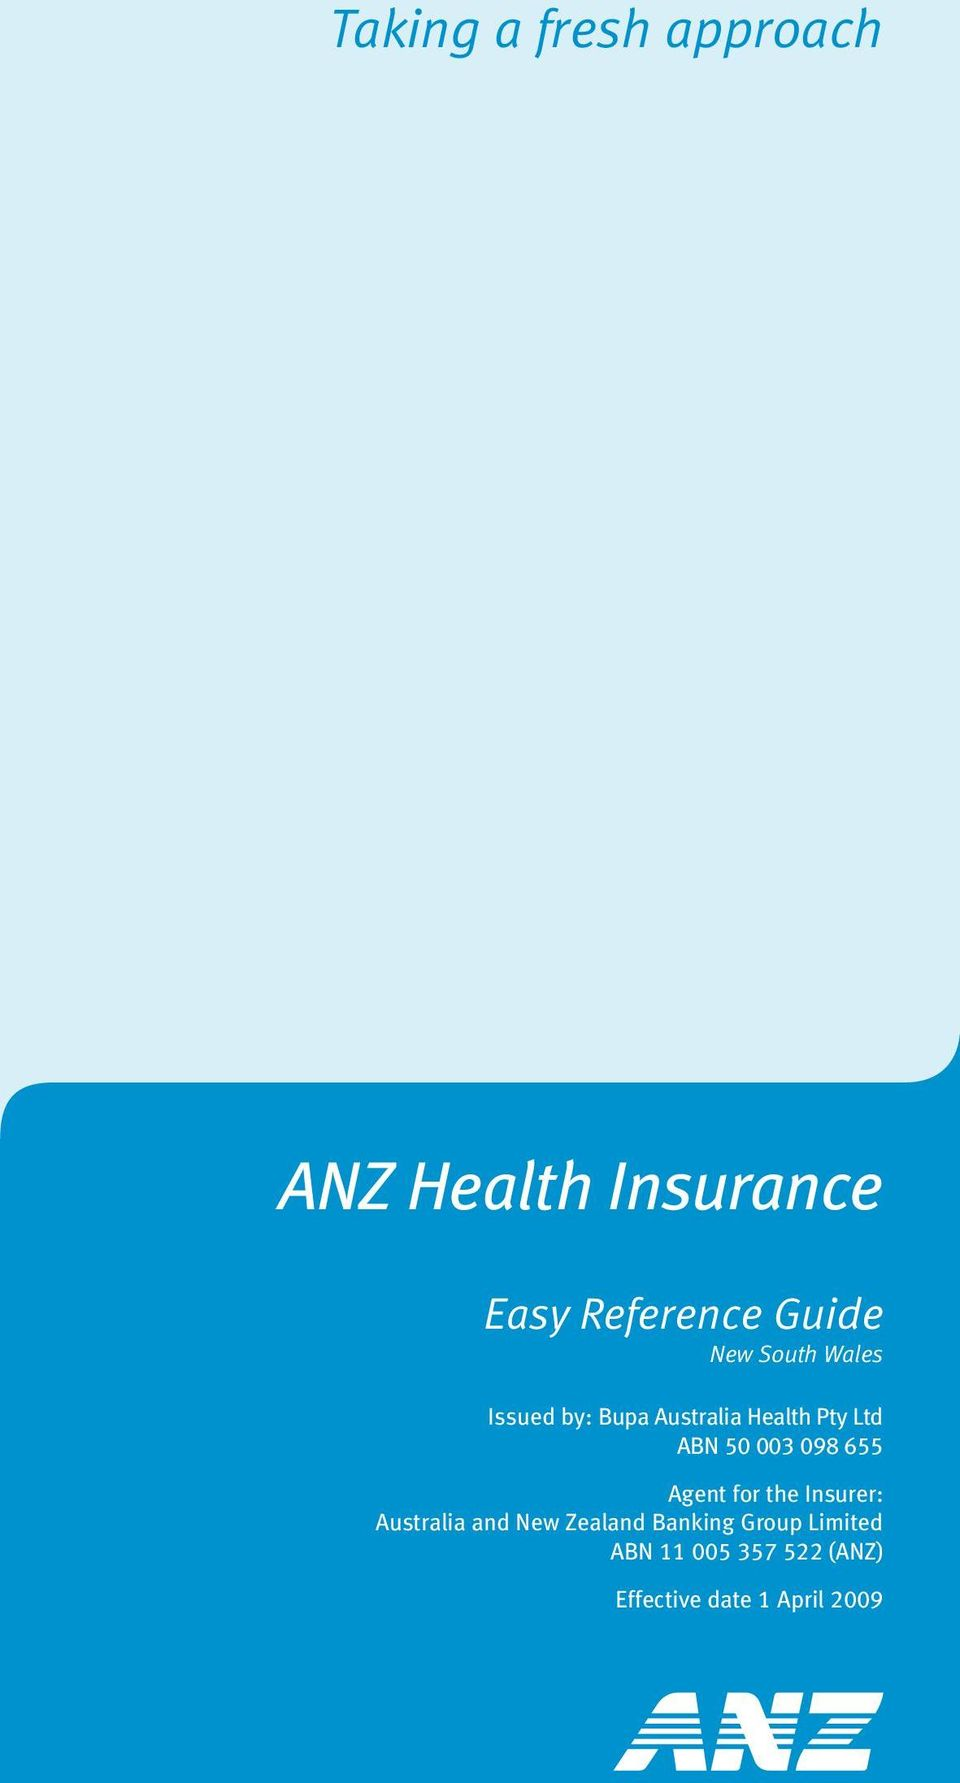 003 098 655 Agent for the Insurer: Australia and New Zealand